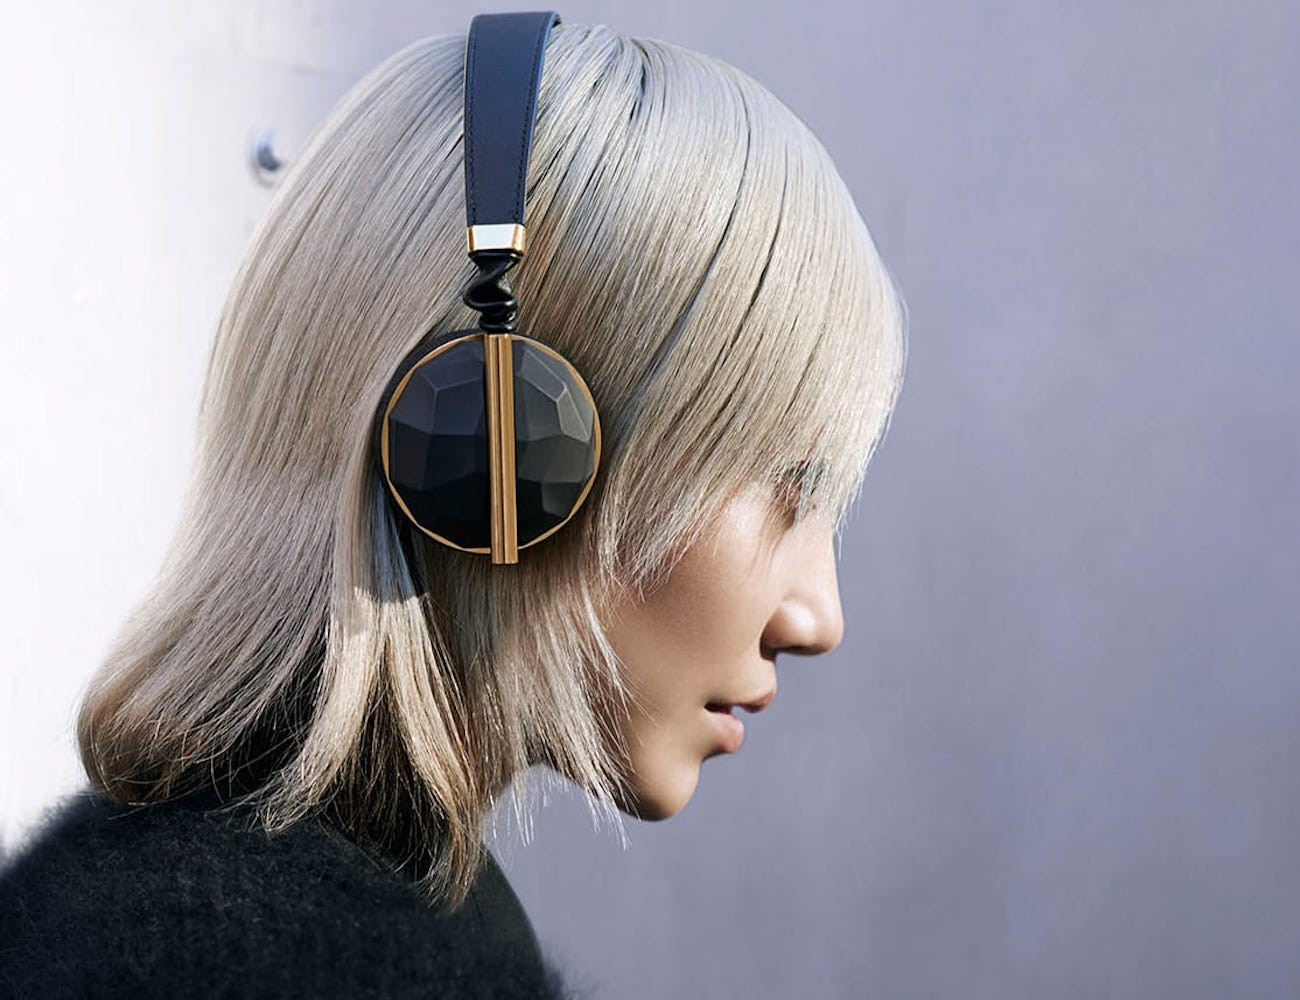 Caeden Linea Nº10 Wireless Lightweight On-Ear Headphones are a sonic revolution